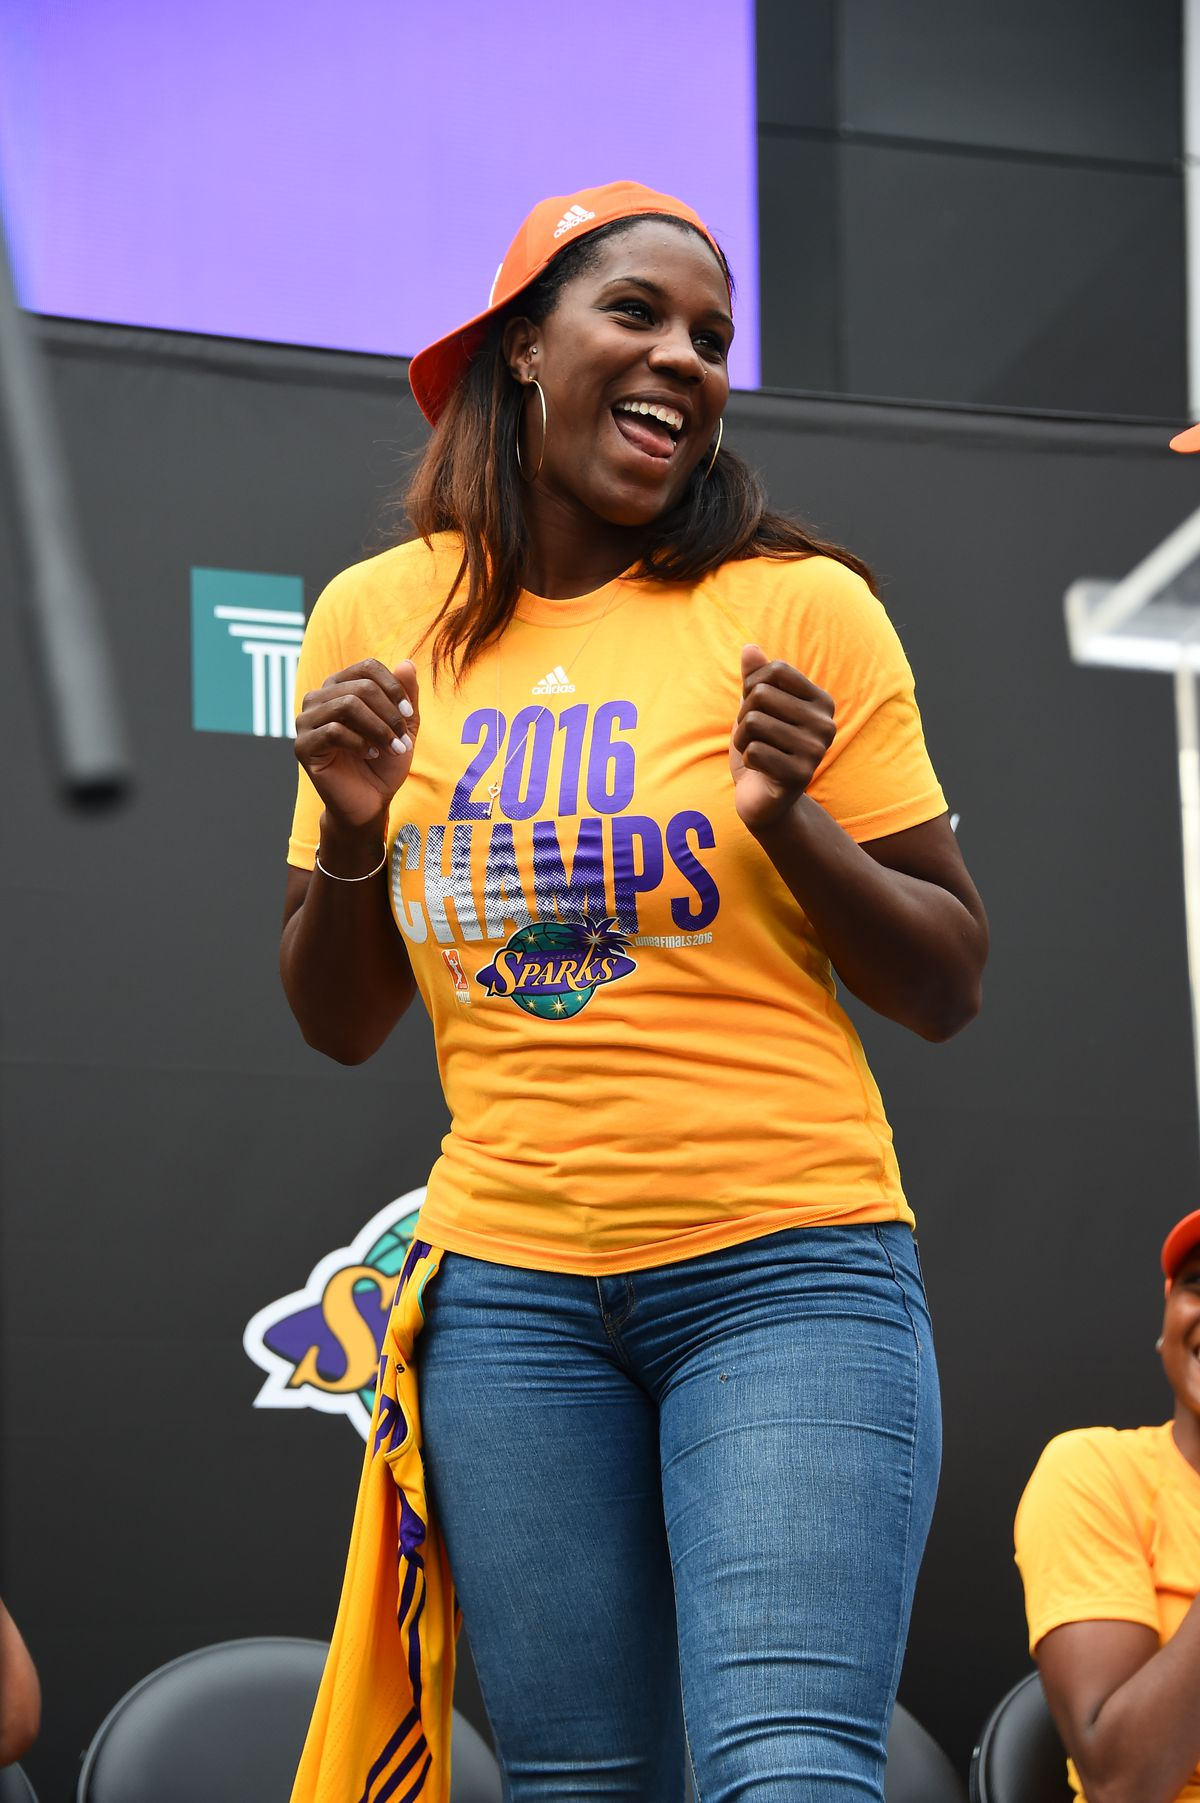 Los Angeles Sparks Championship Rally 2016